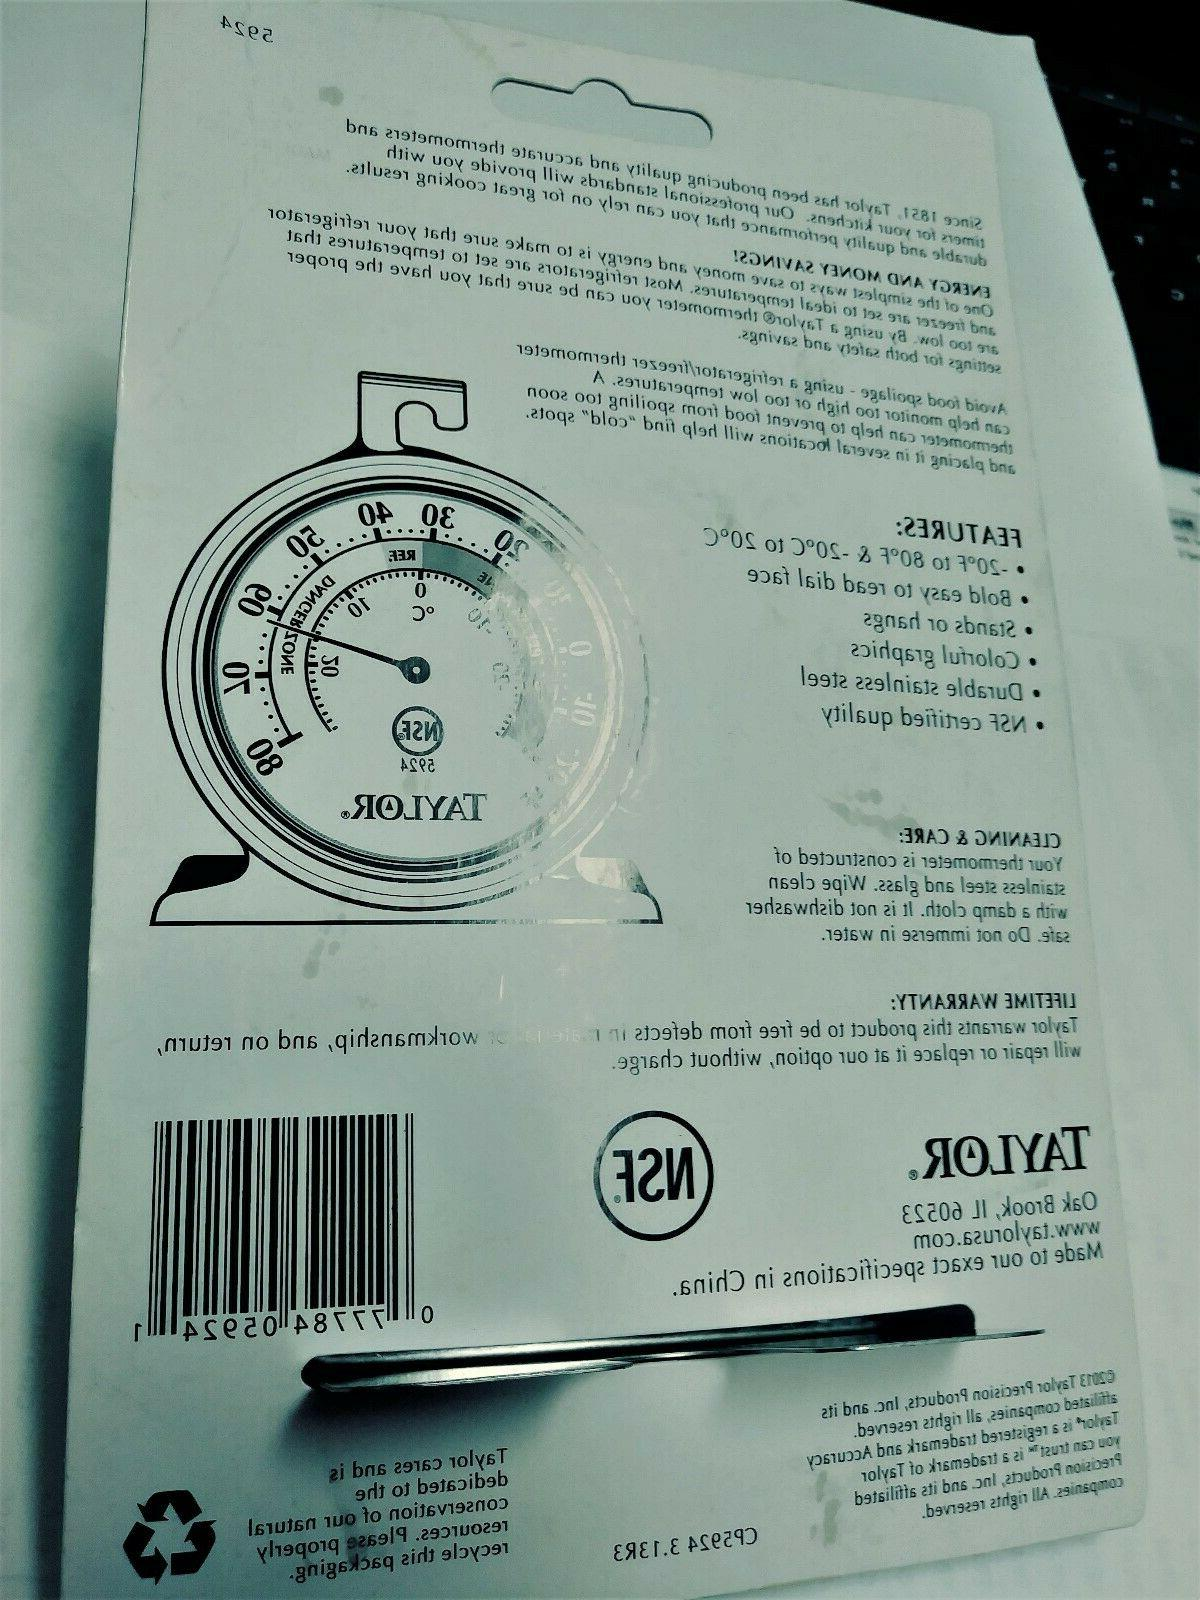 Taylor 5924 Refrigerator Thermometer -20 To 80 Degrees Hang FS